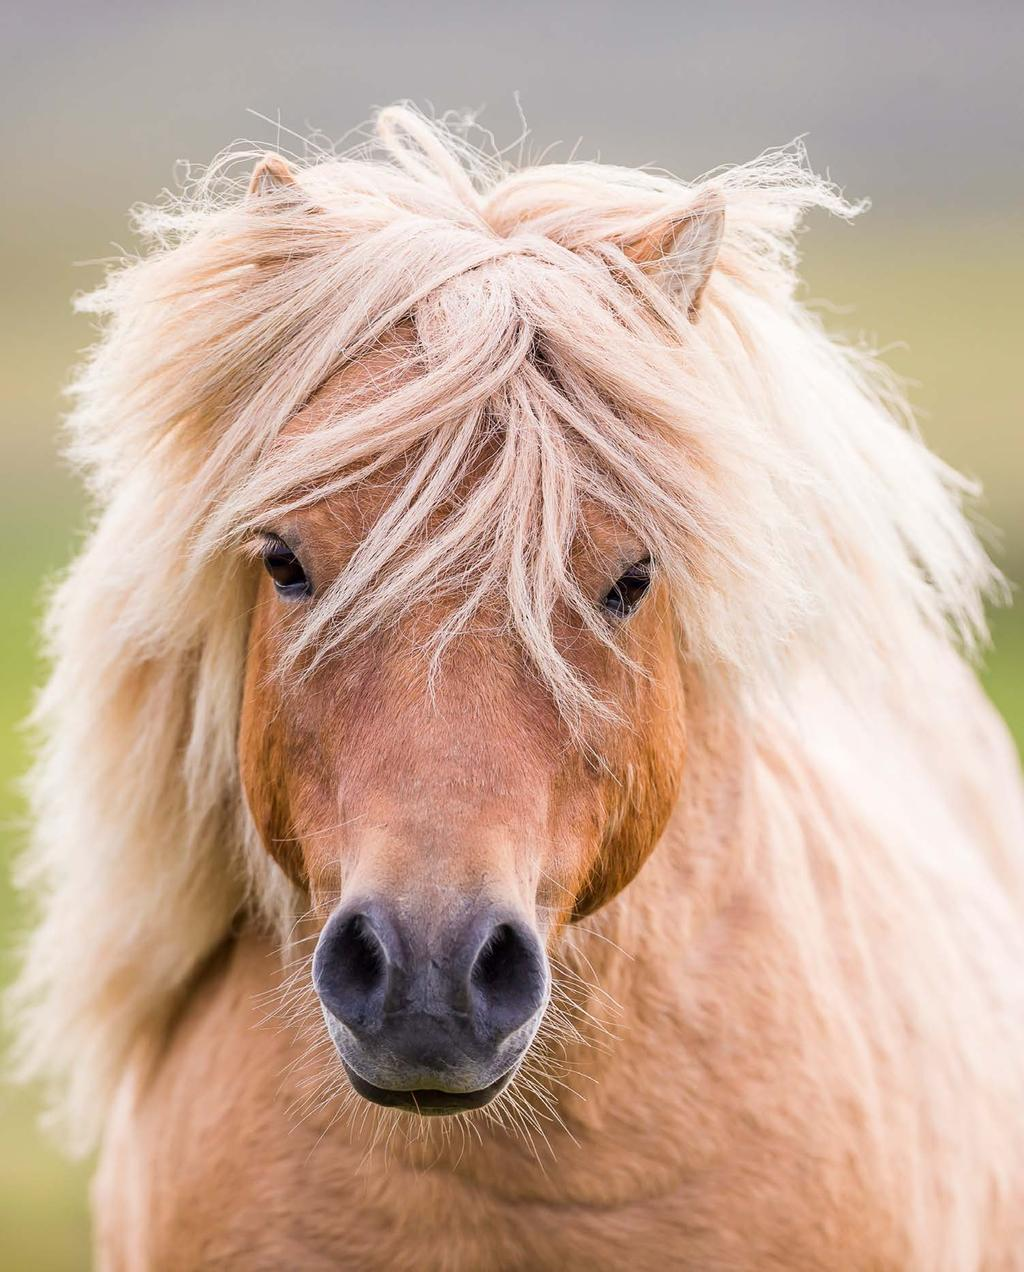 Later in history, because of its hardy nature and its small size, the pony